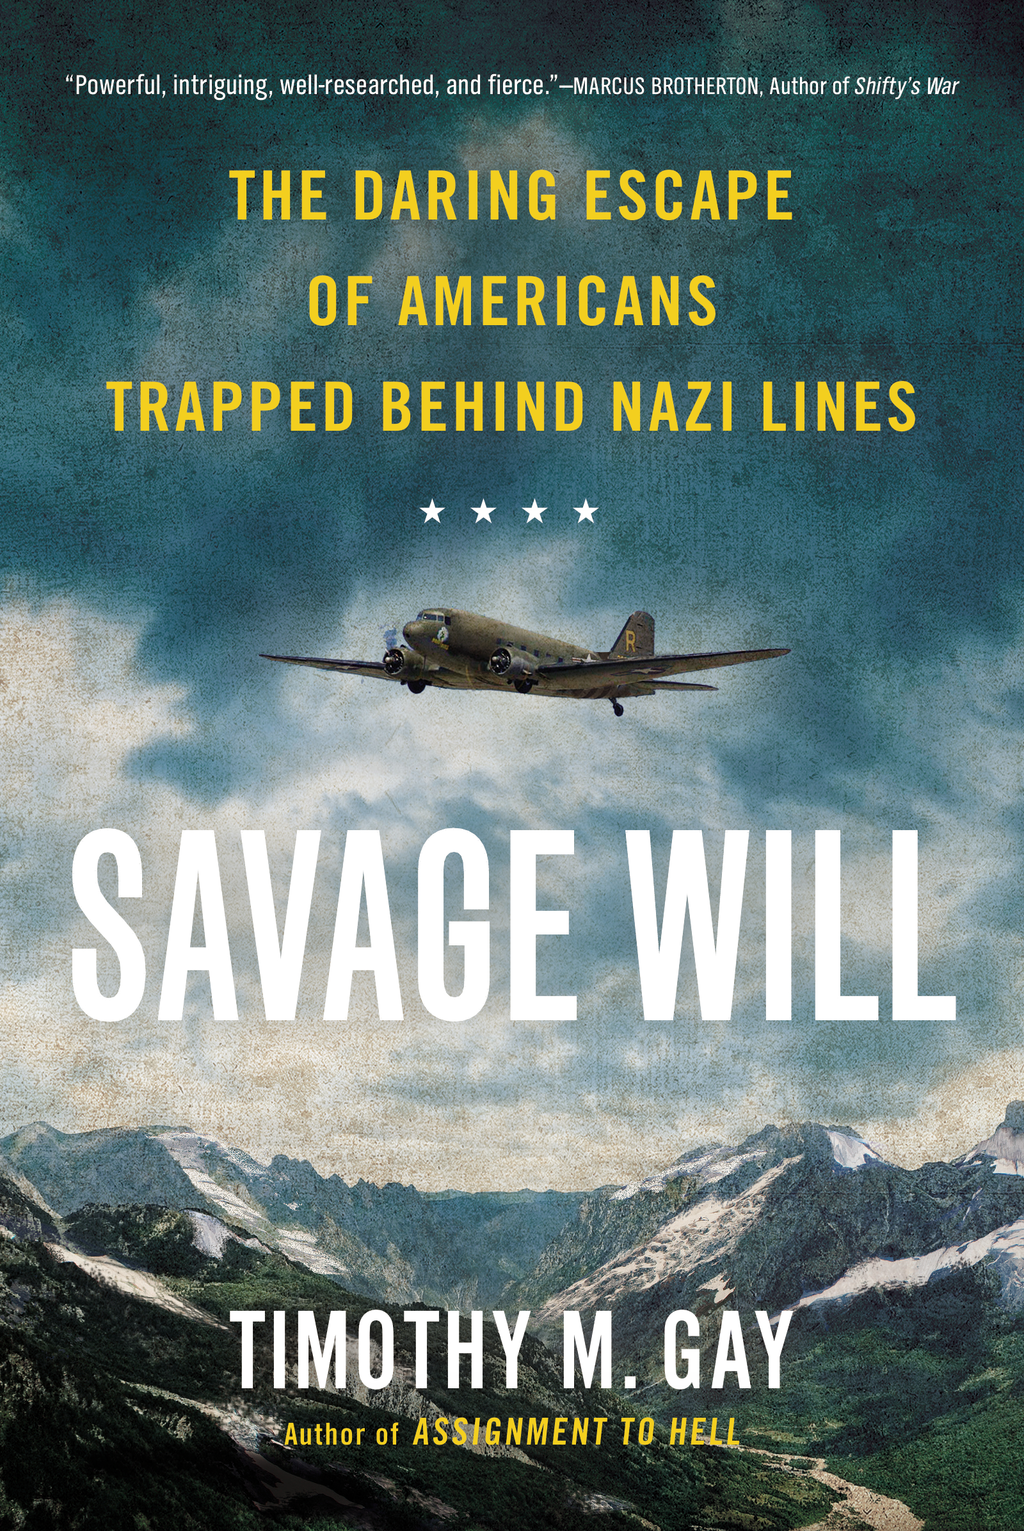 Savage Will The Daring Escape of Americans Trapped Behind Nazi Lines